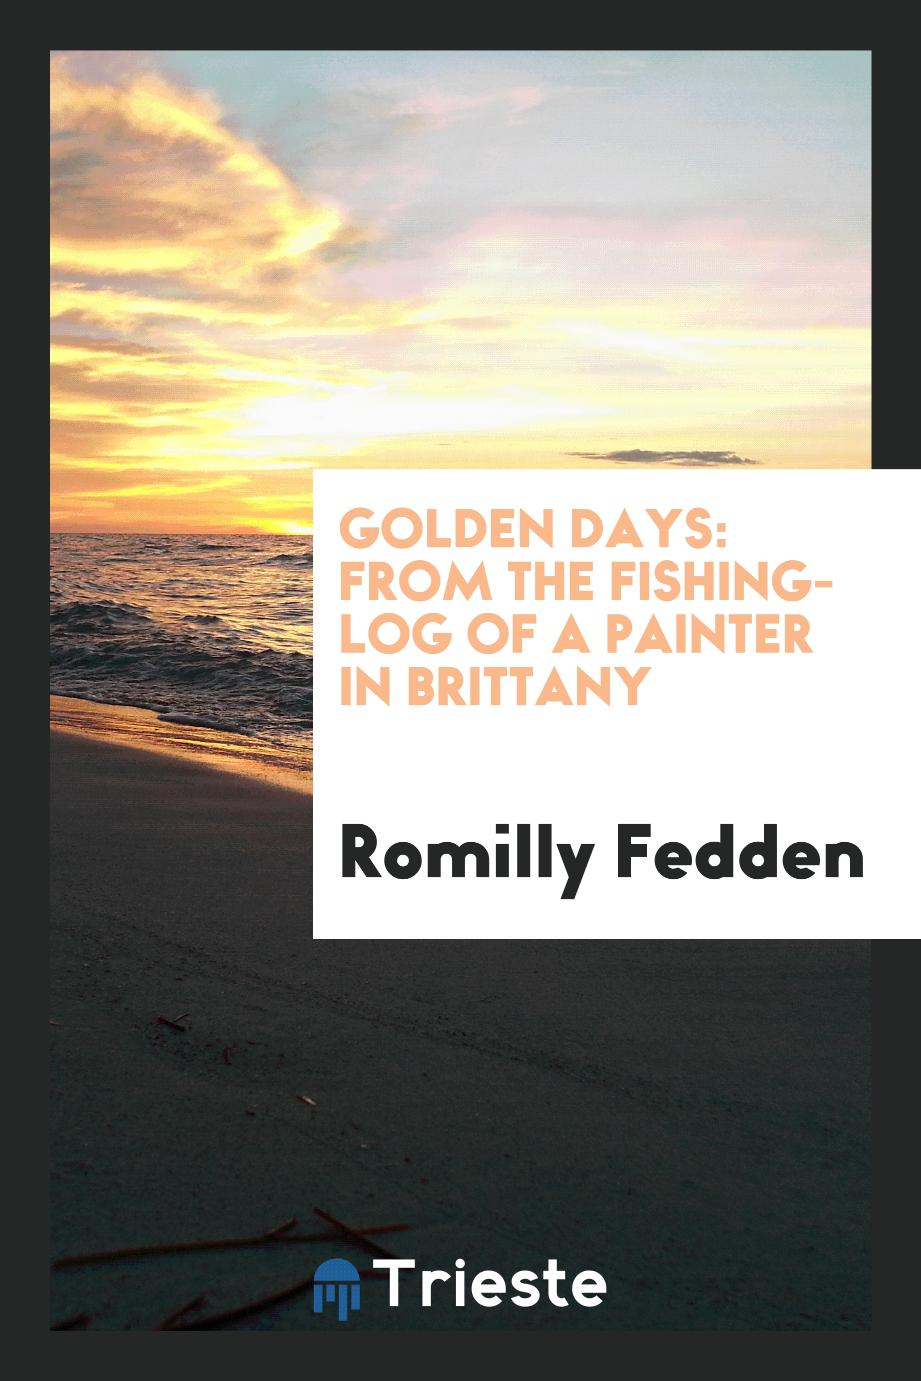 Golden days: from the fishing-log of a painter in Brittany